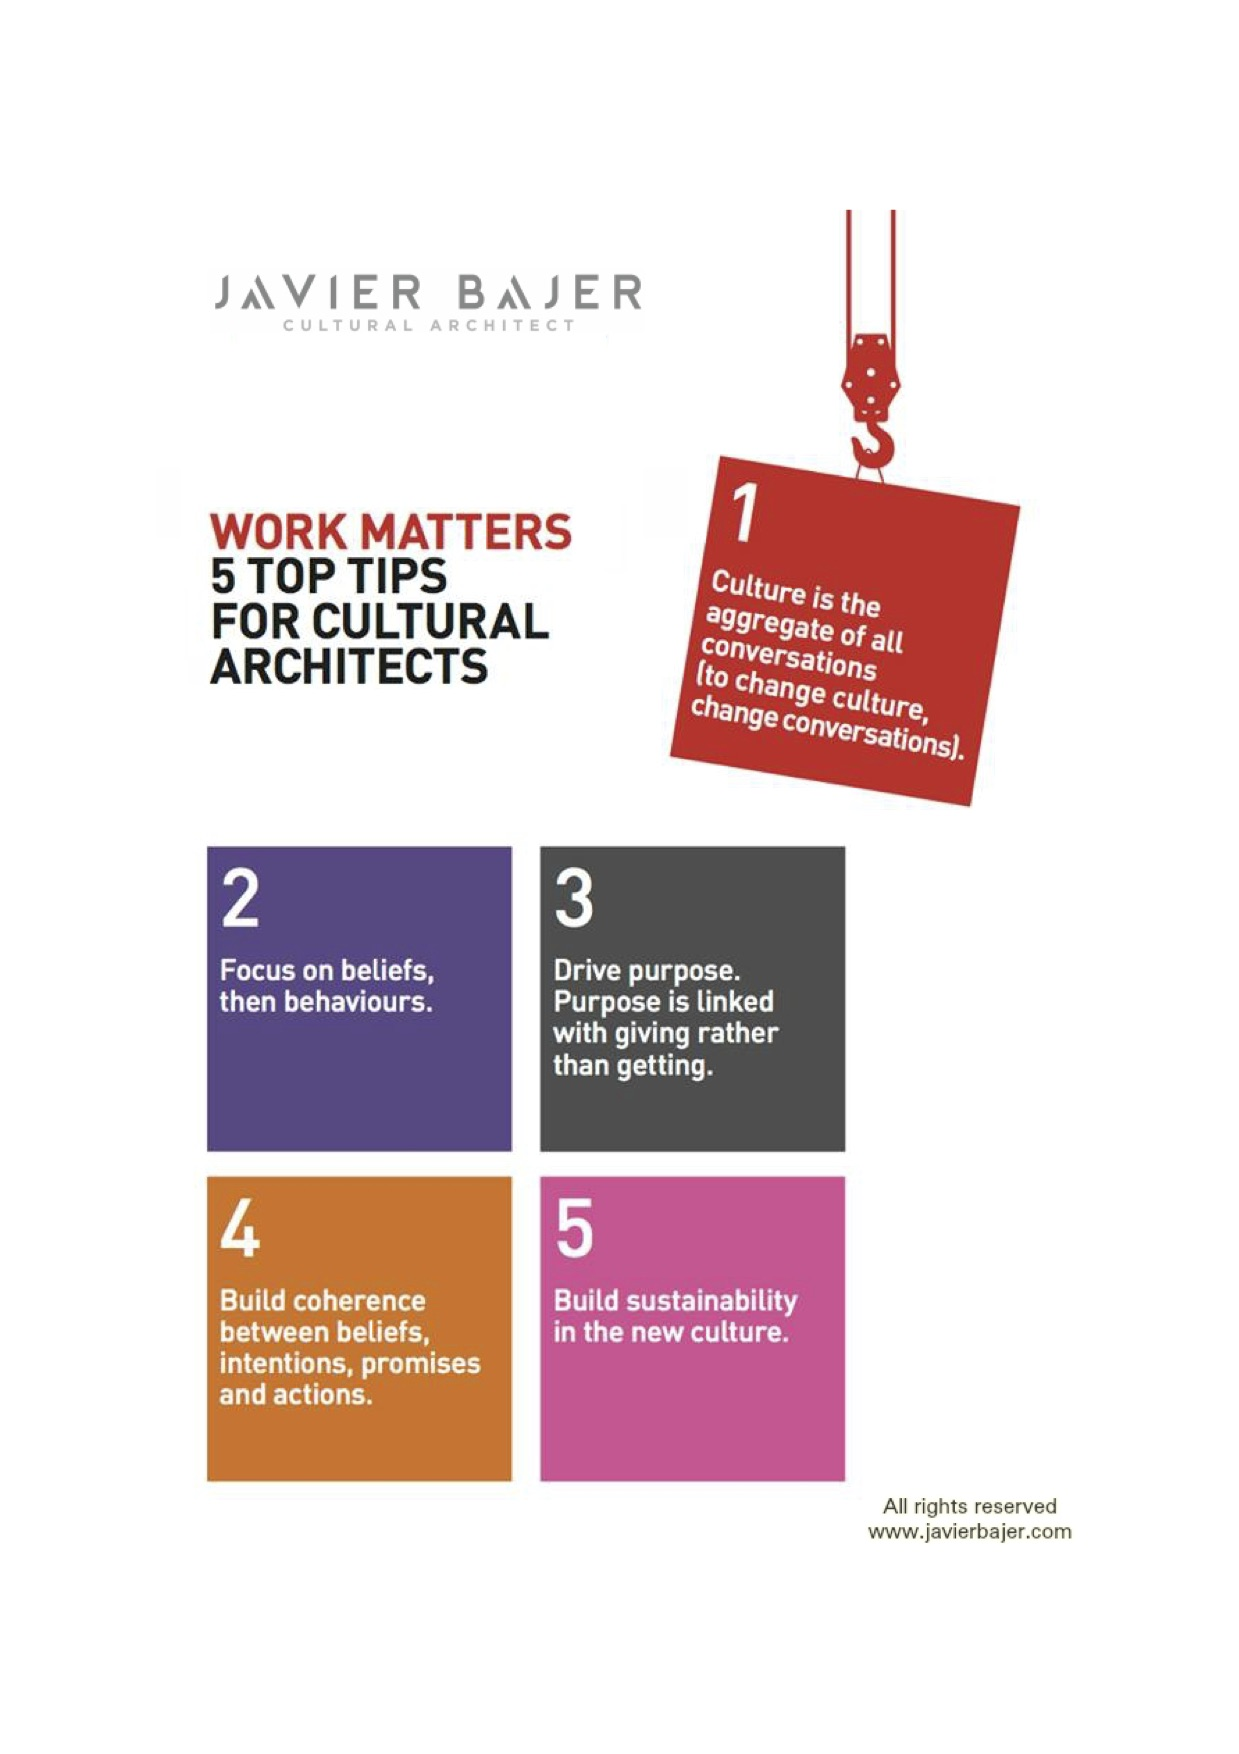 Need help or inspiration to change culture? Watch videos on javierbajer.com